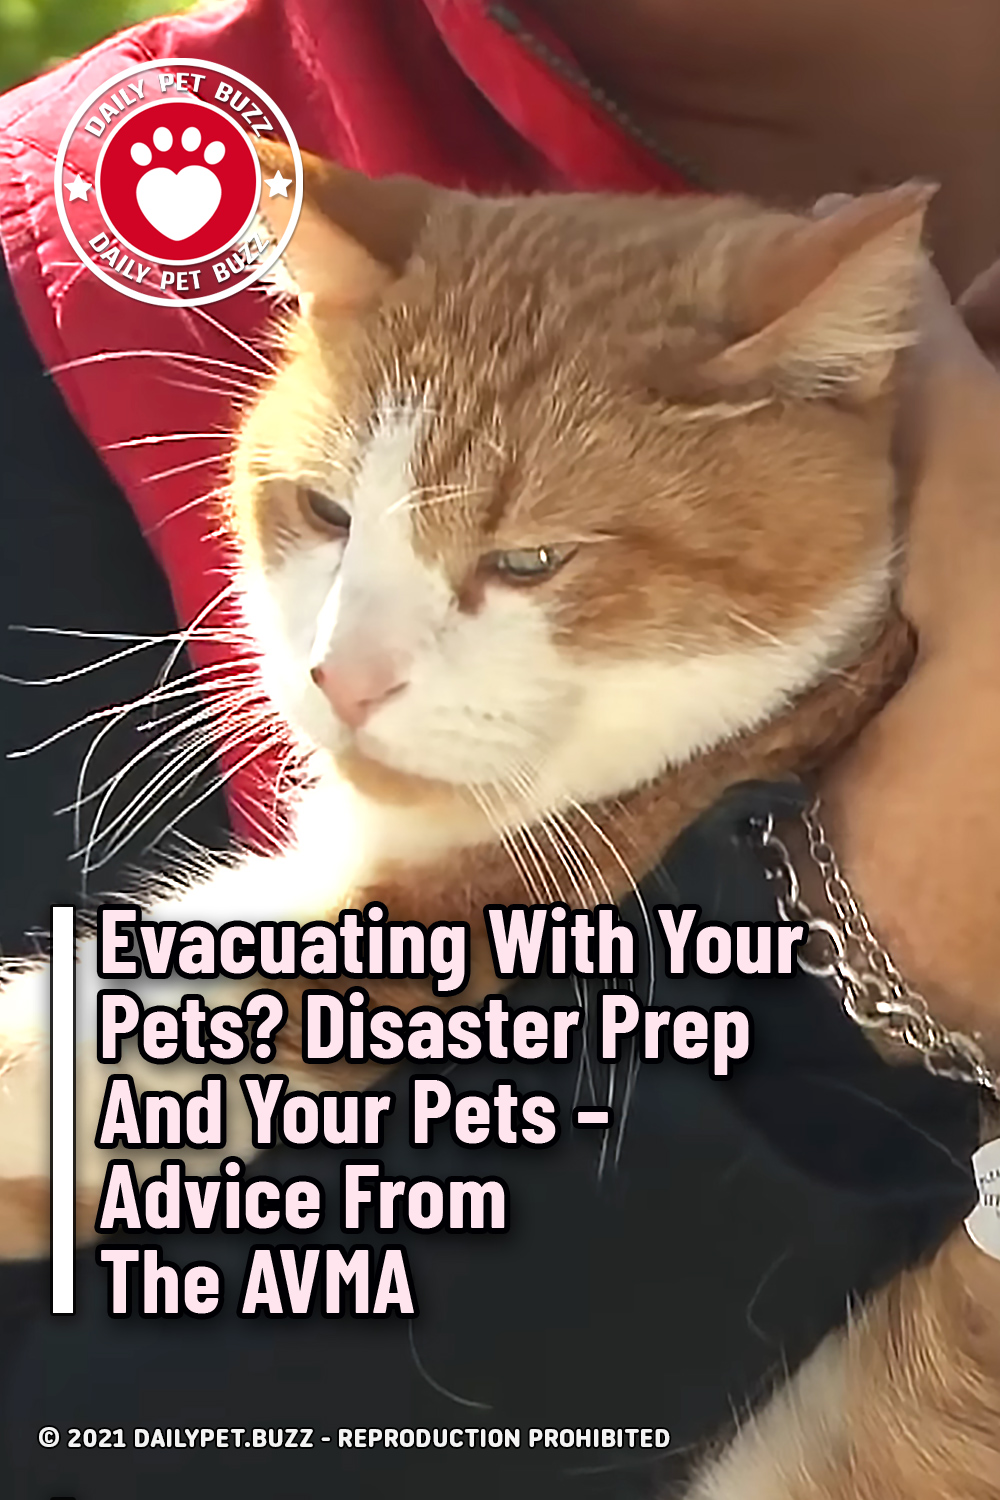 Evacuating With Your Pets? Disaster Prep And Your Pets – Advice From The AVMA